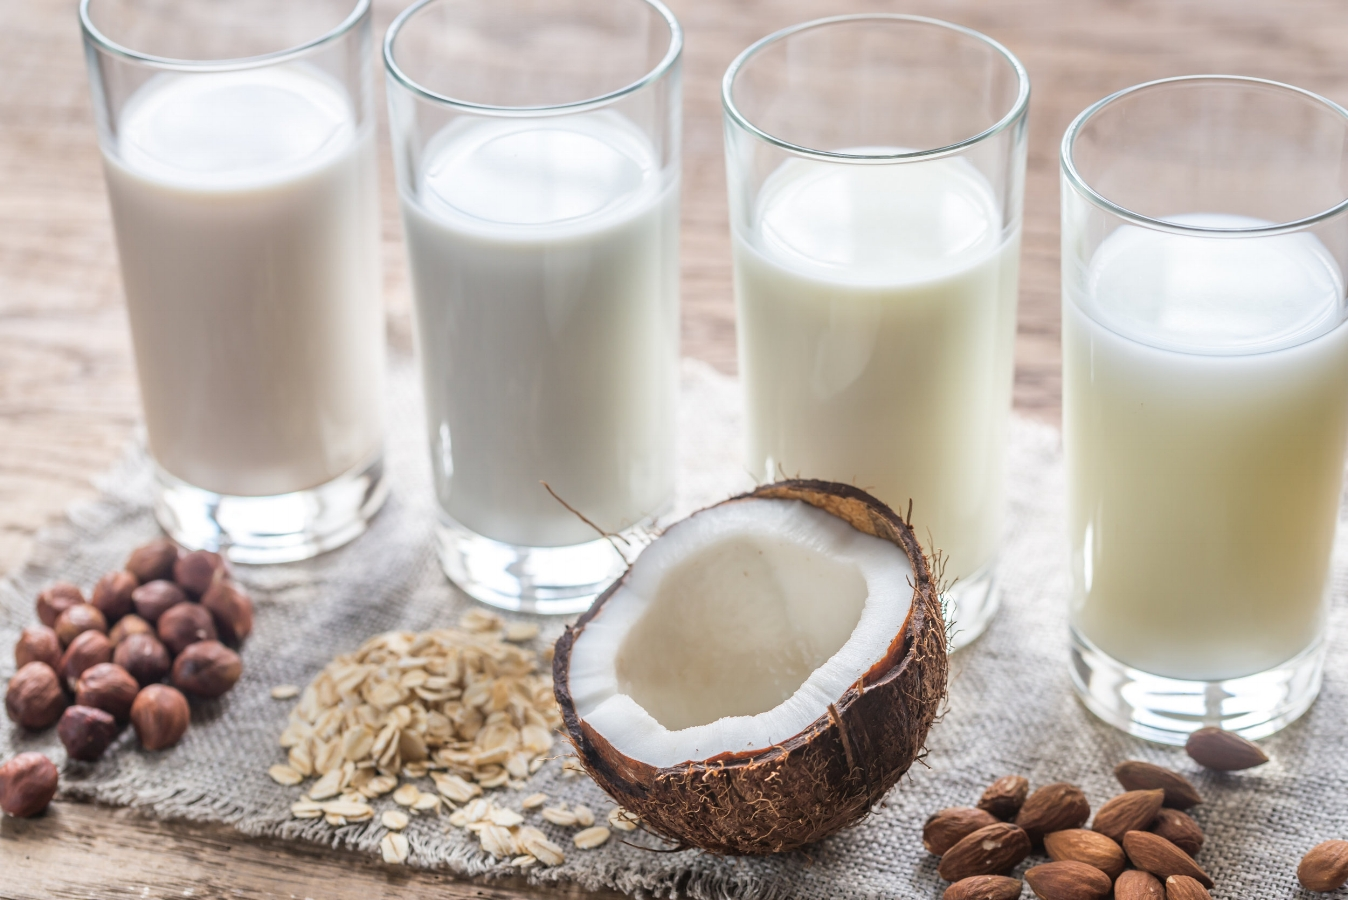 Need Help Going Dairy-free